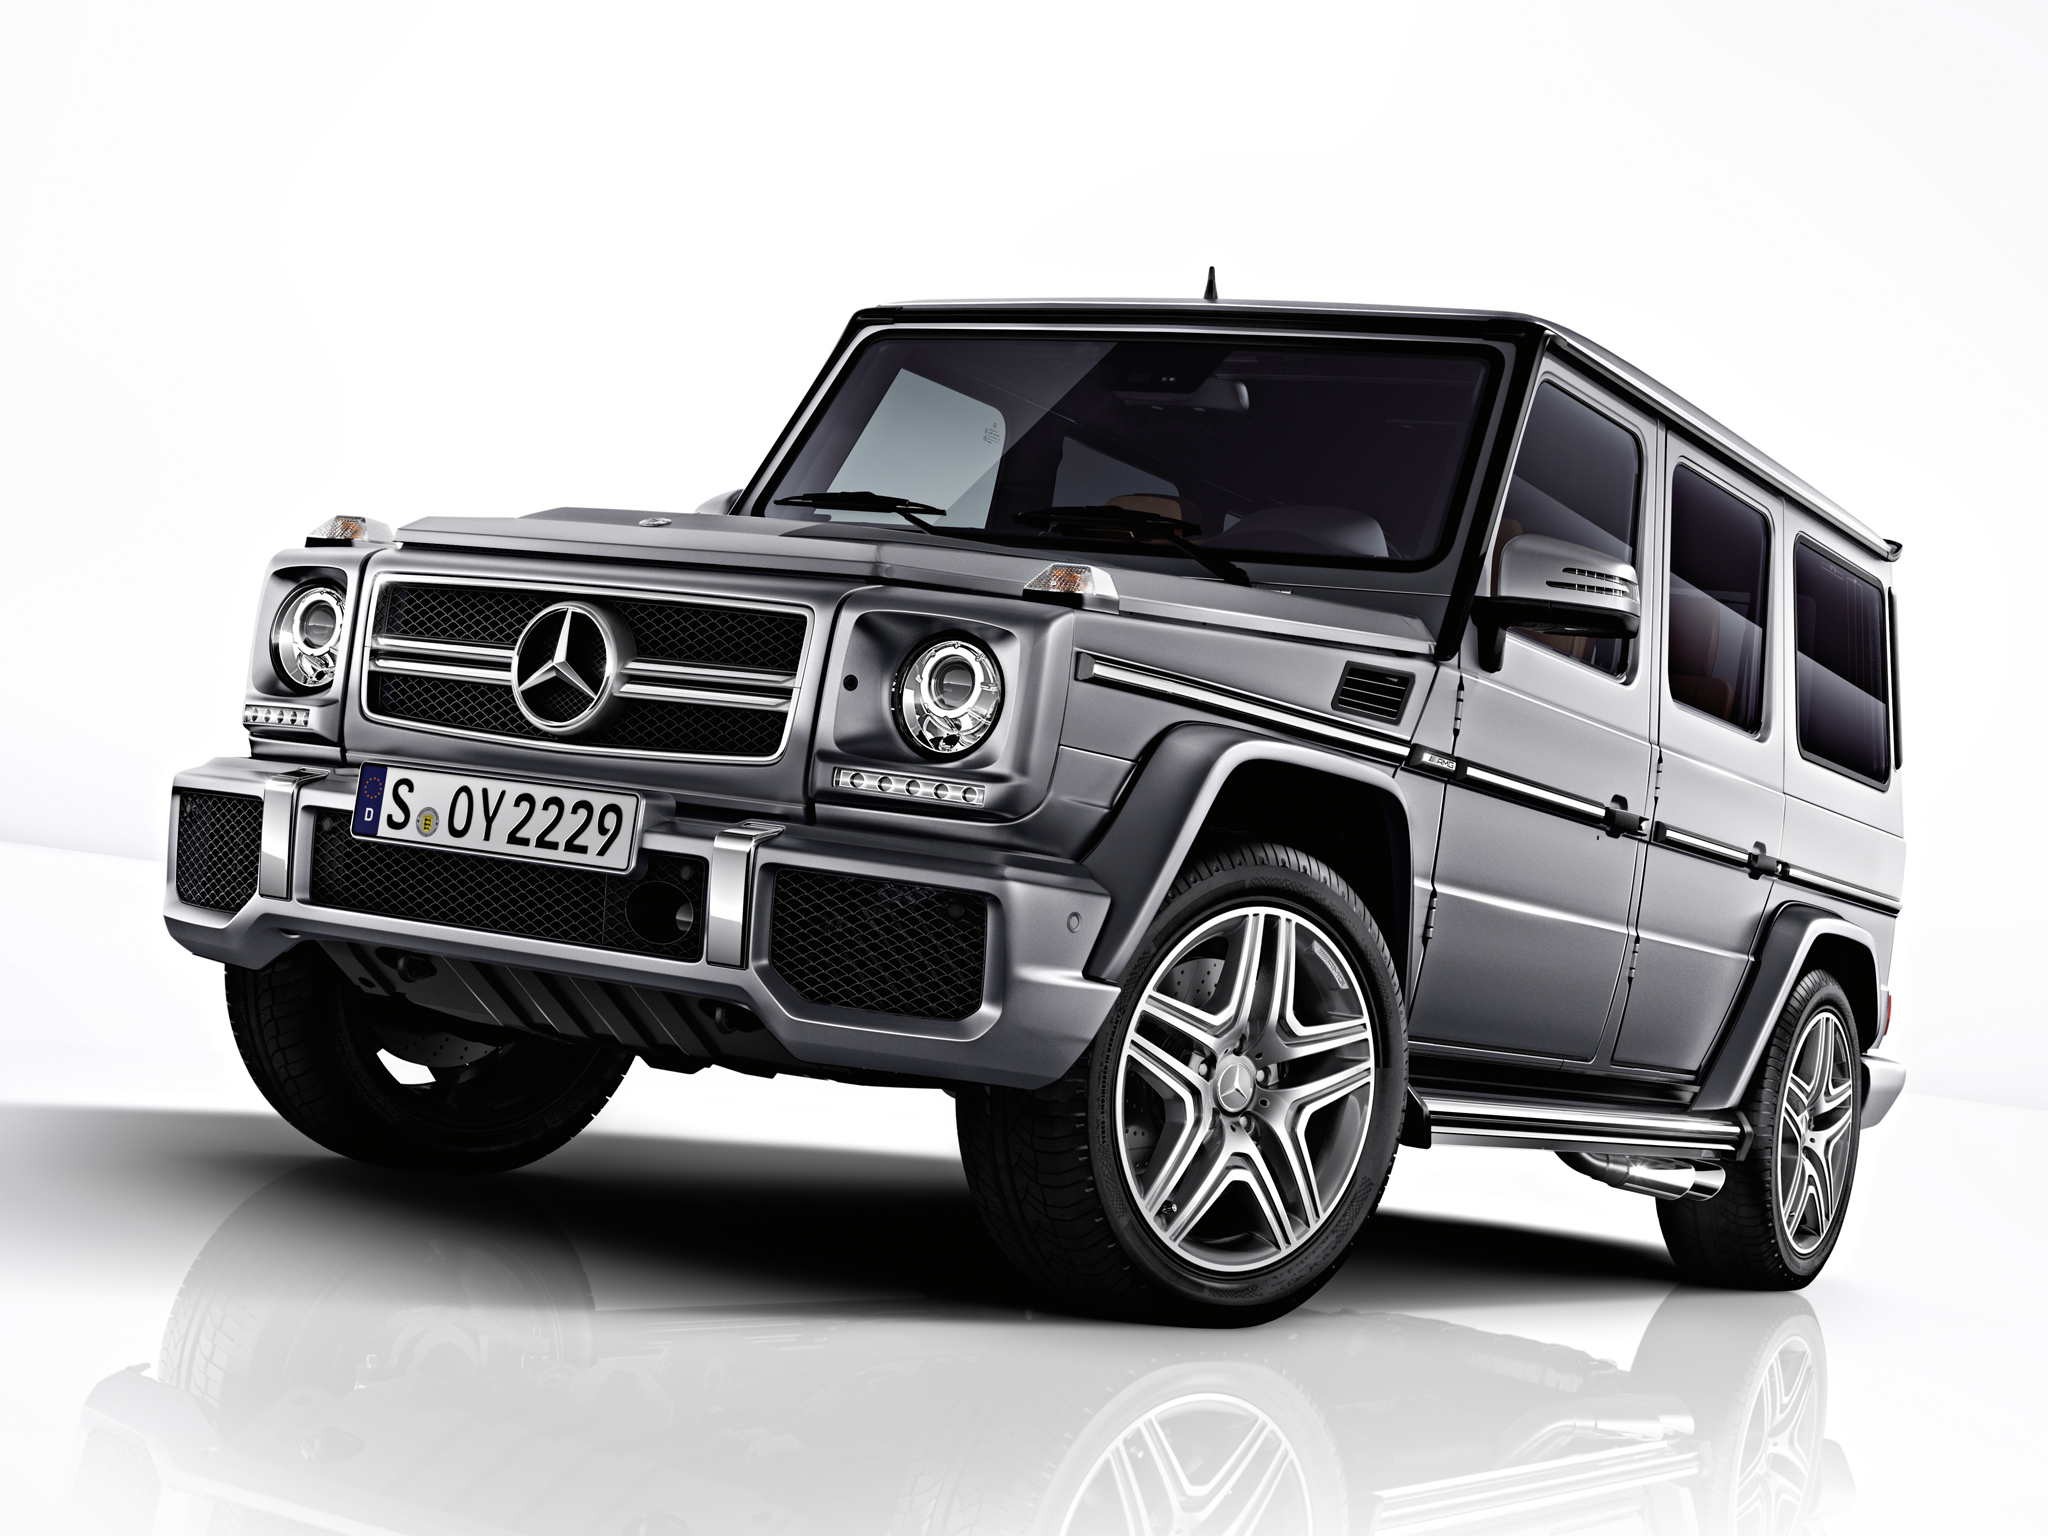 Mercedes benz g class amg photos reviews news specs for Mercedes benz g class used 2003